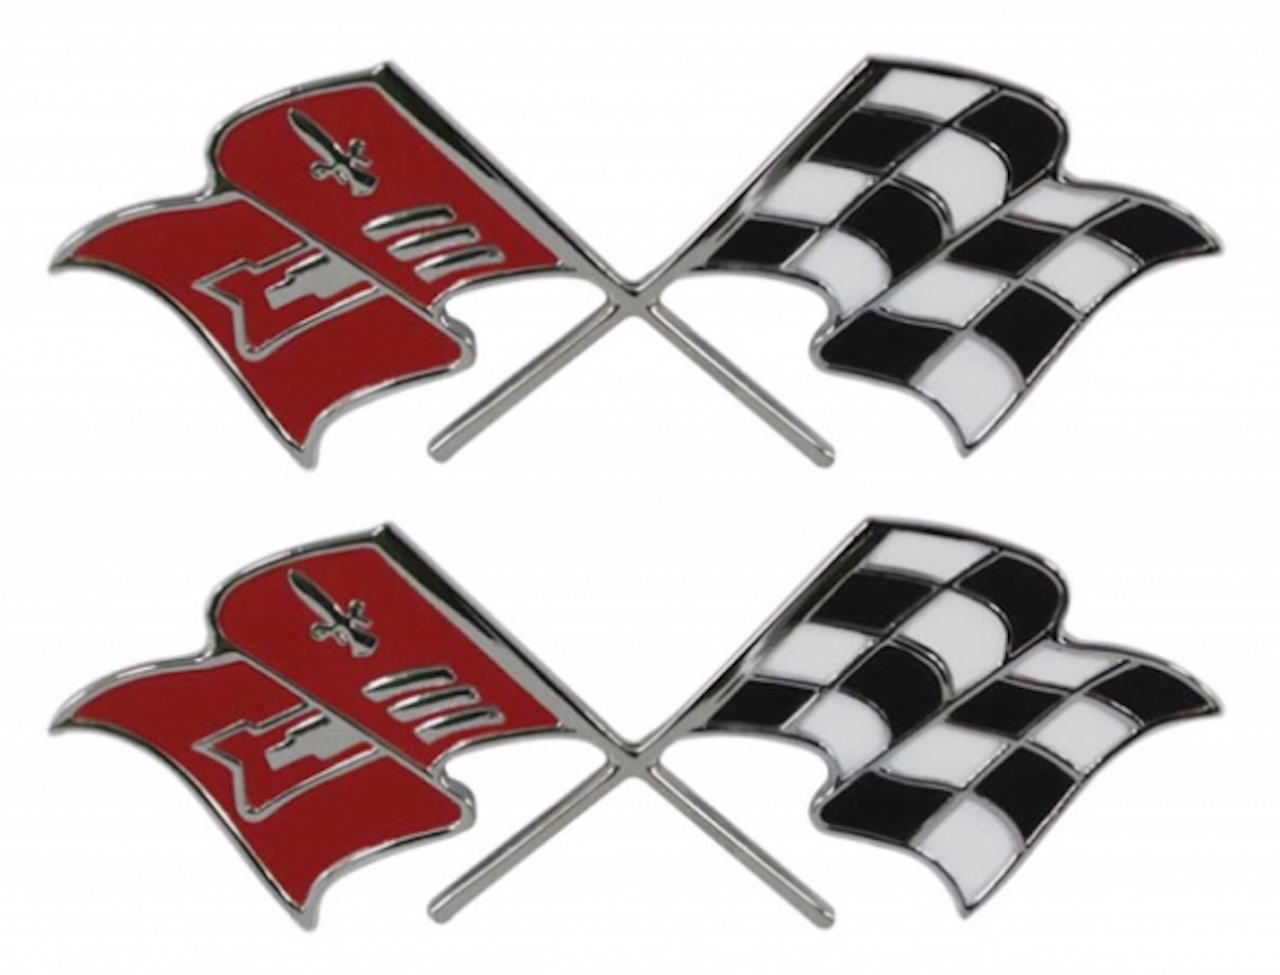 1957 Chevy Fuel Injection Flags Emblem